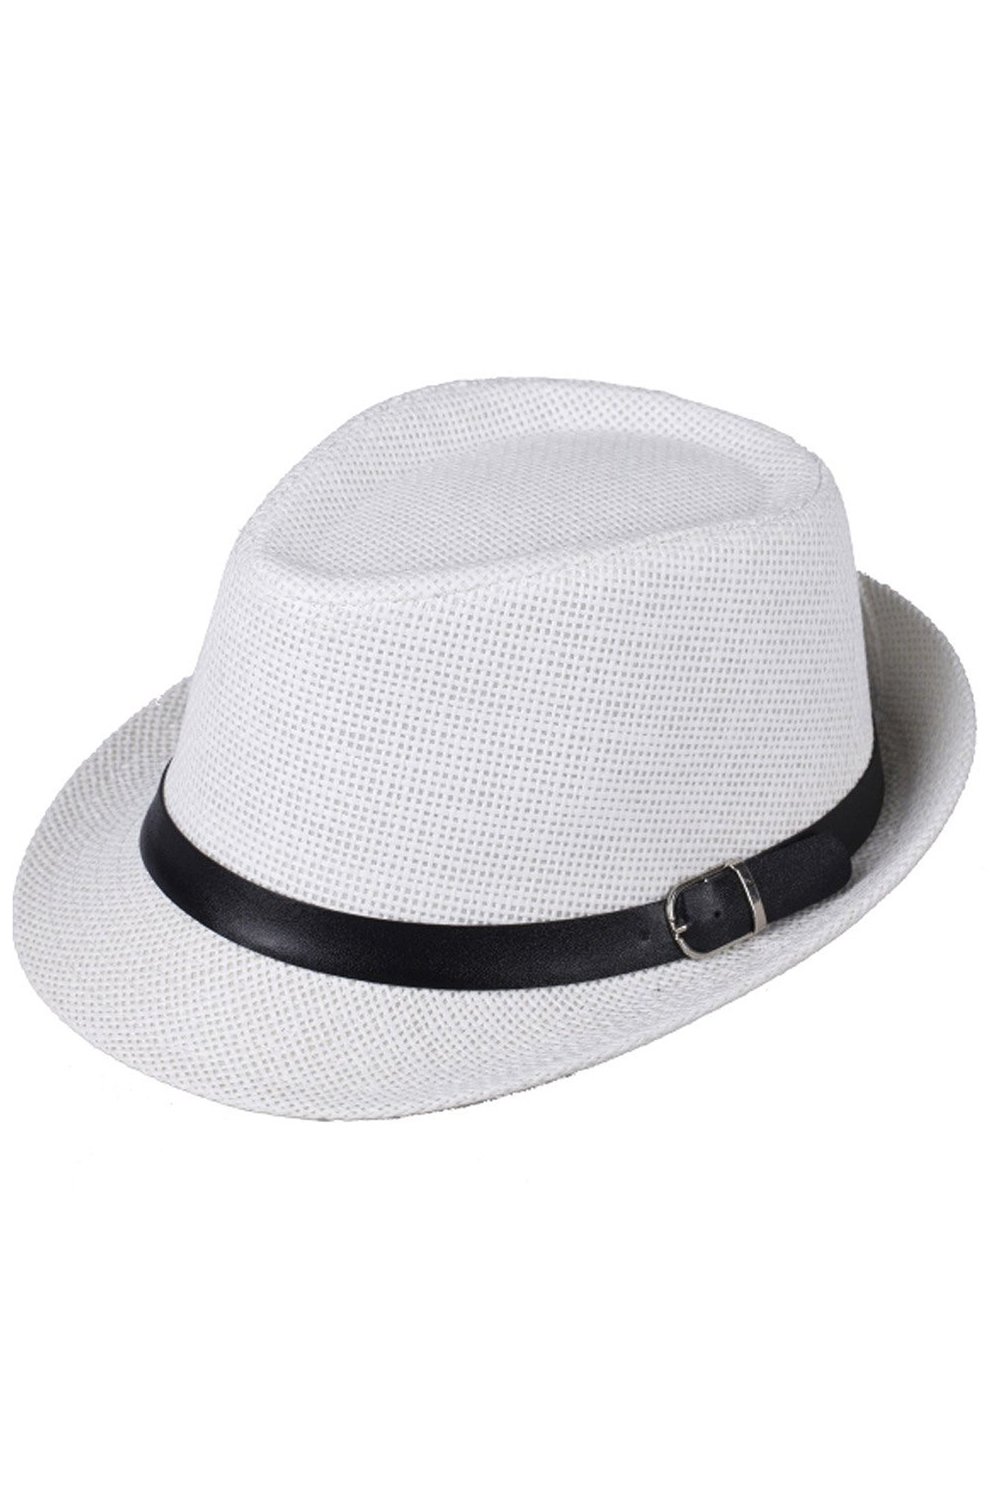 TOP Hat Boys Fedoras Trilby Cap Straw Beach Sunhat with Belt White ... 1c9f5958d90